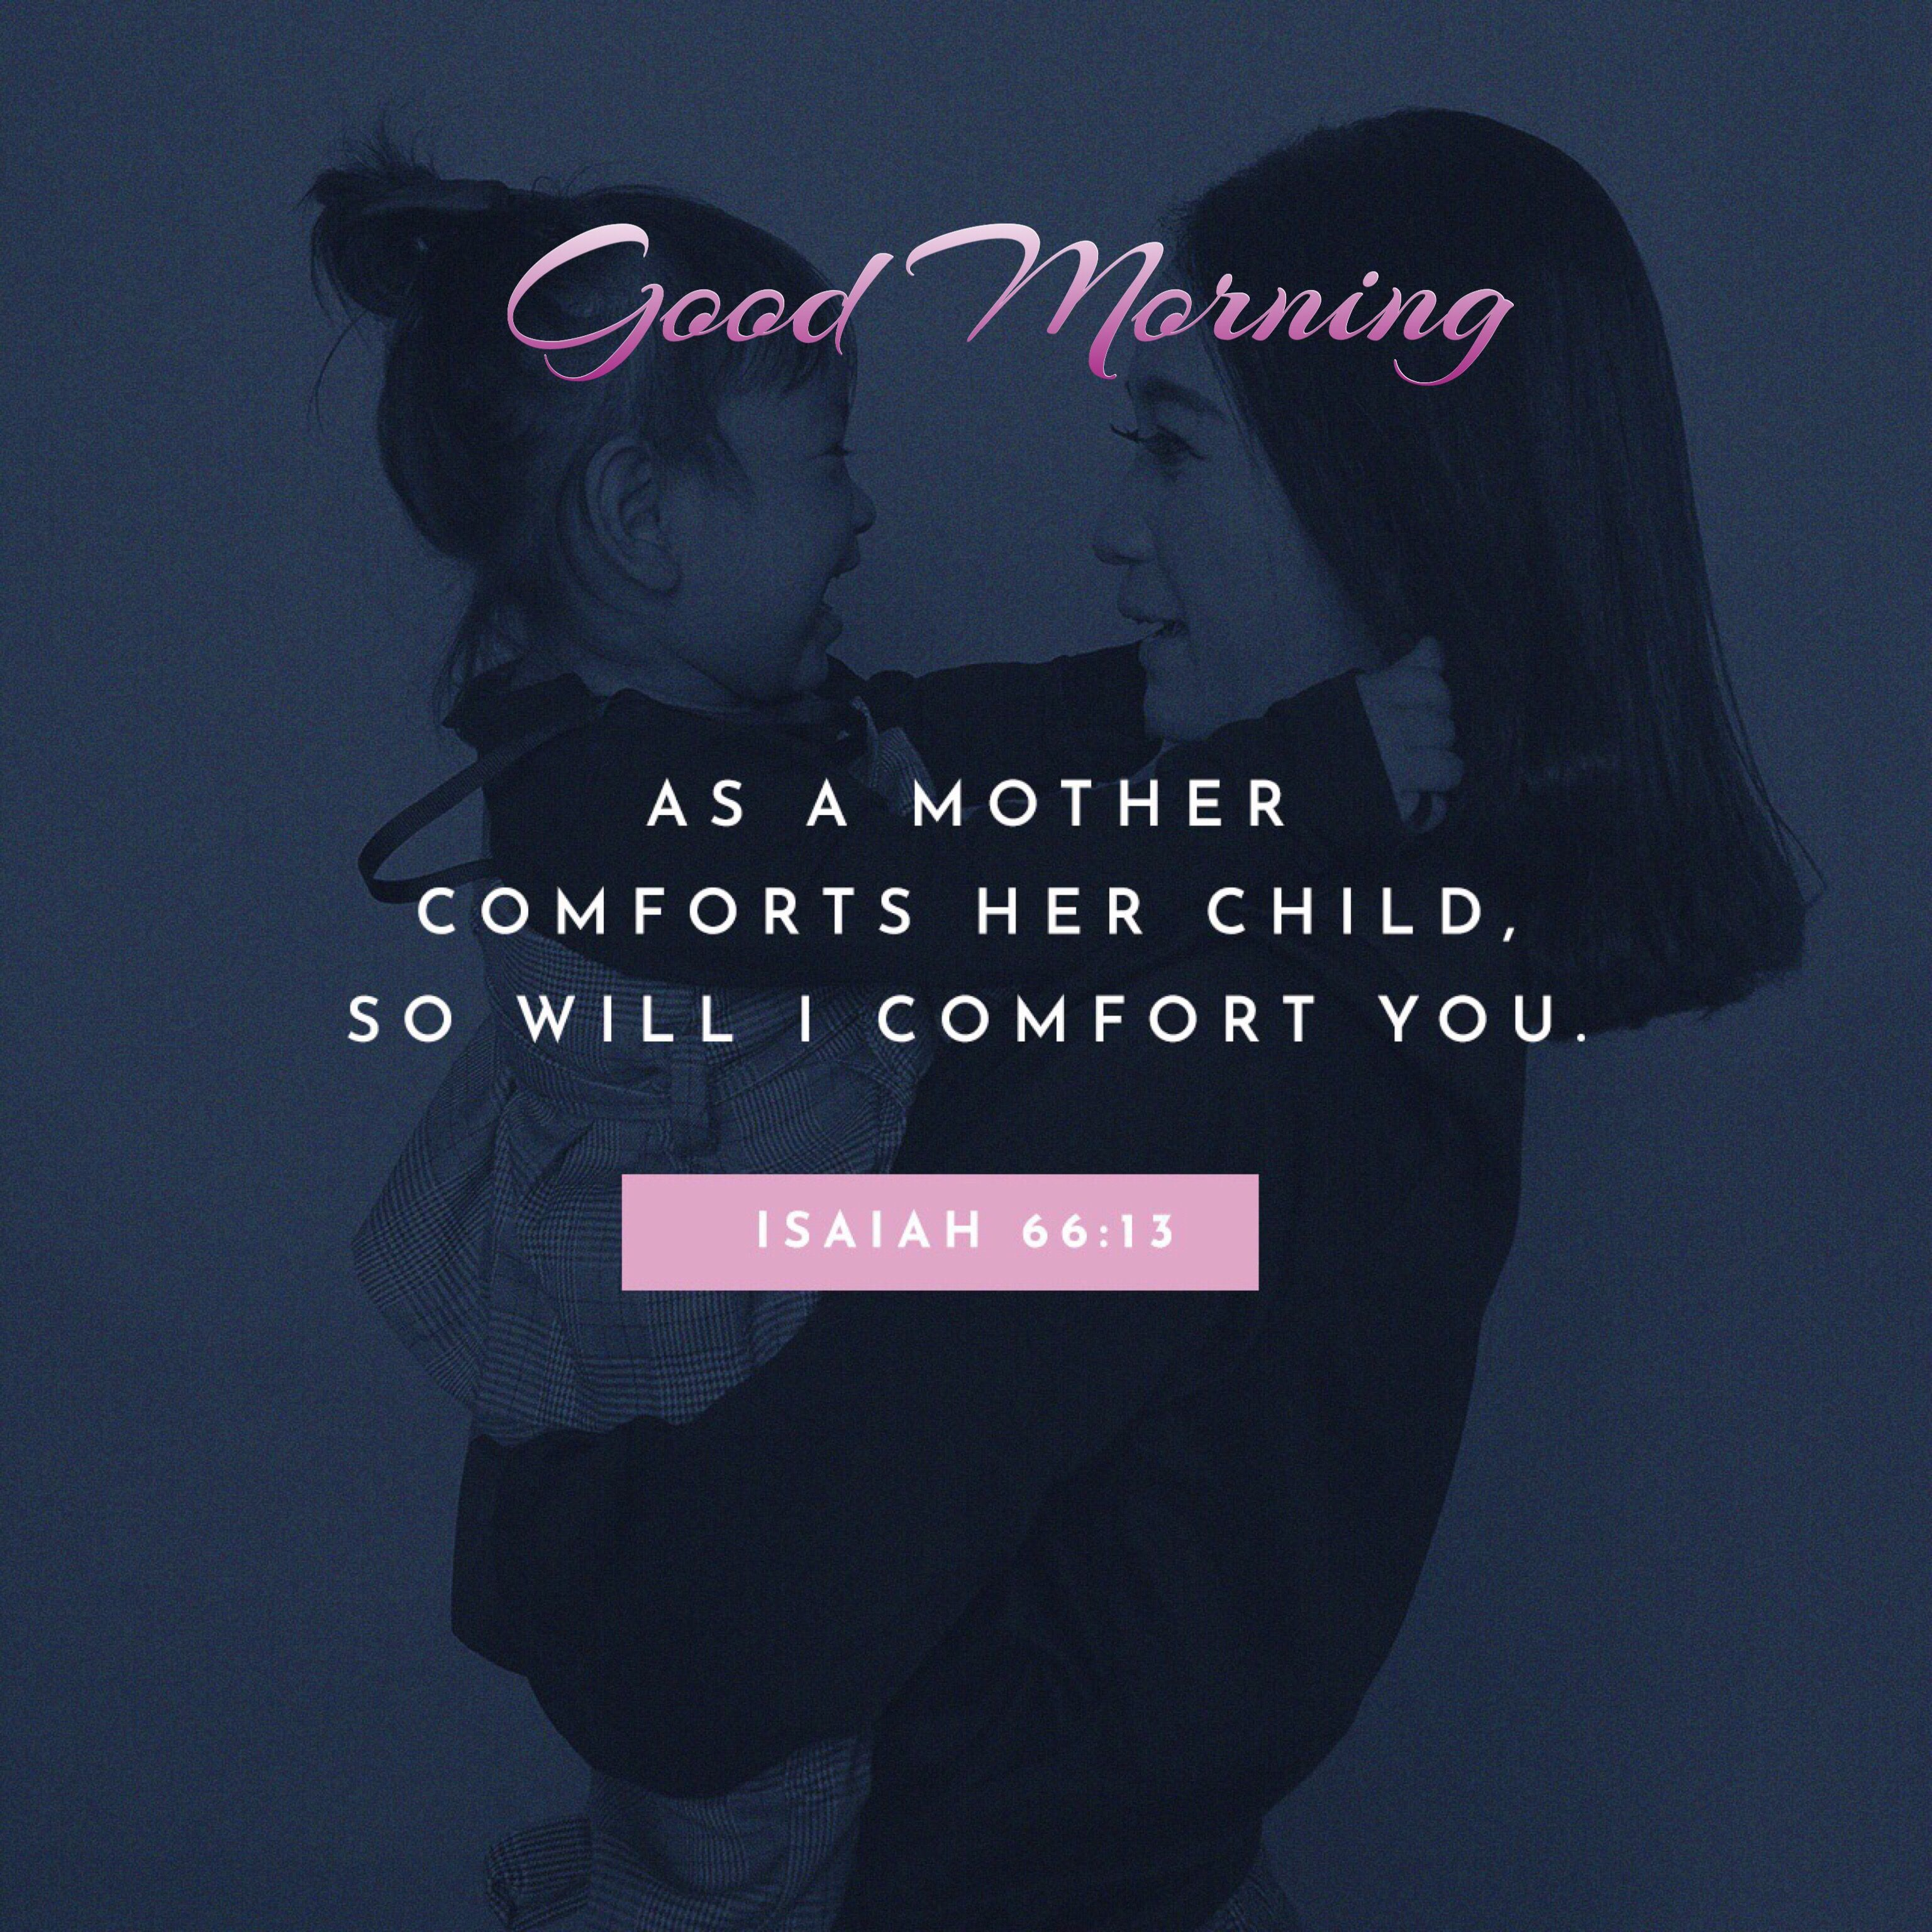 Pin By Mj Nirmala On Good Morning With Images Bible Apps